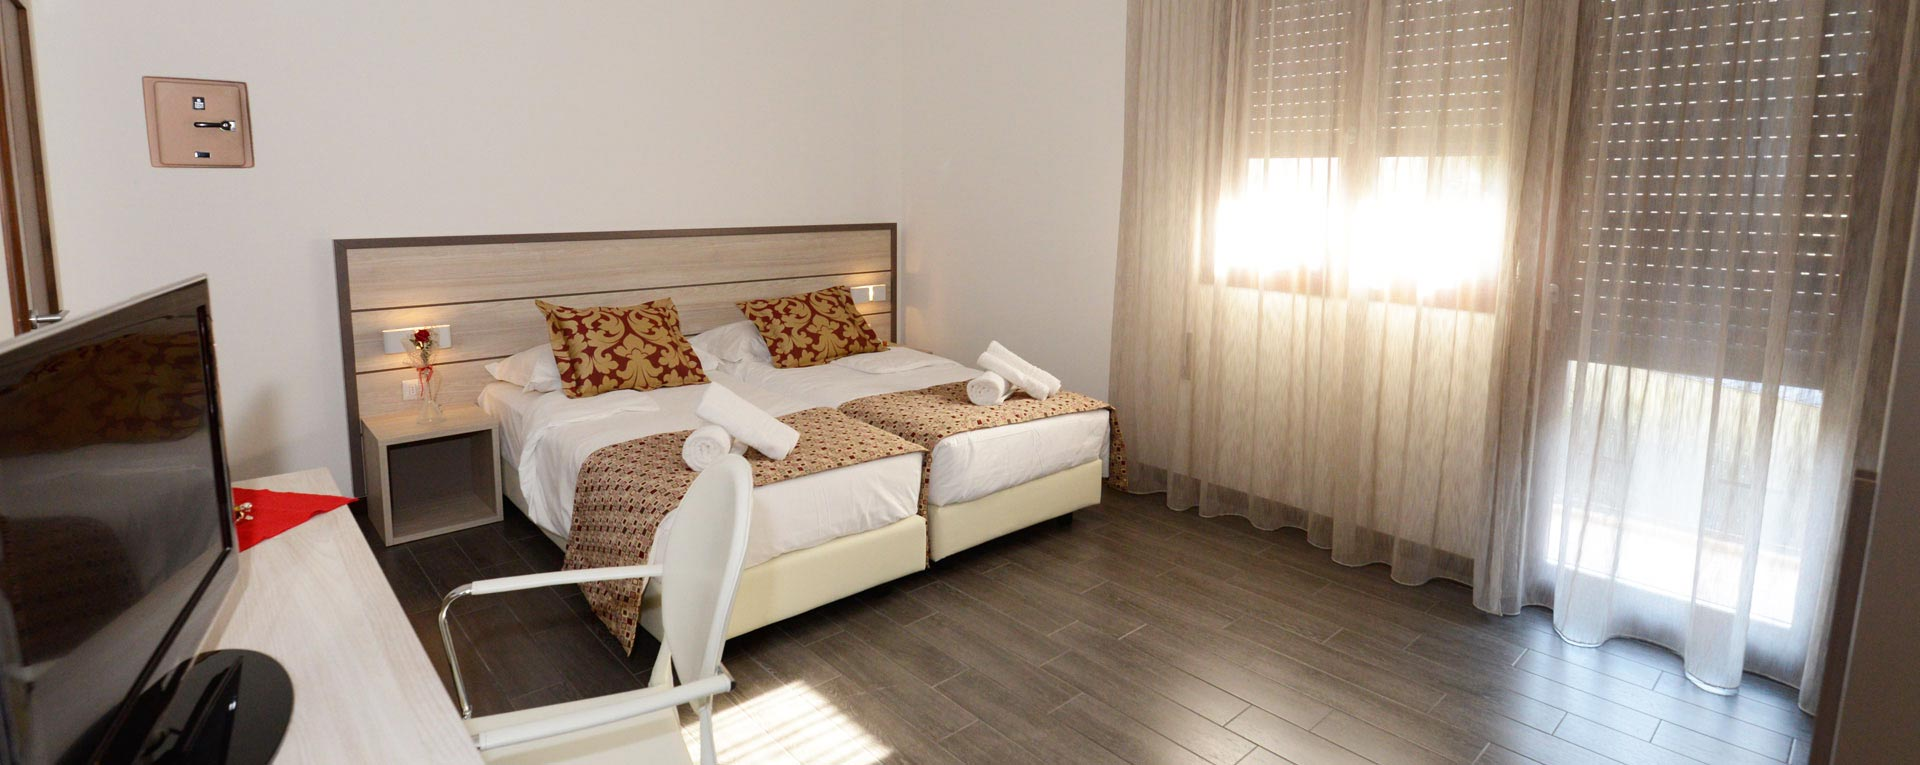 Bed and Breakfast Venezia